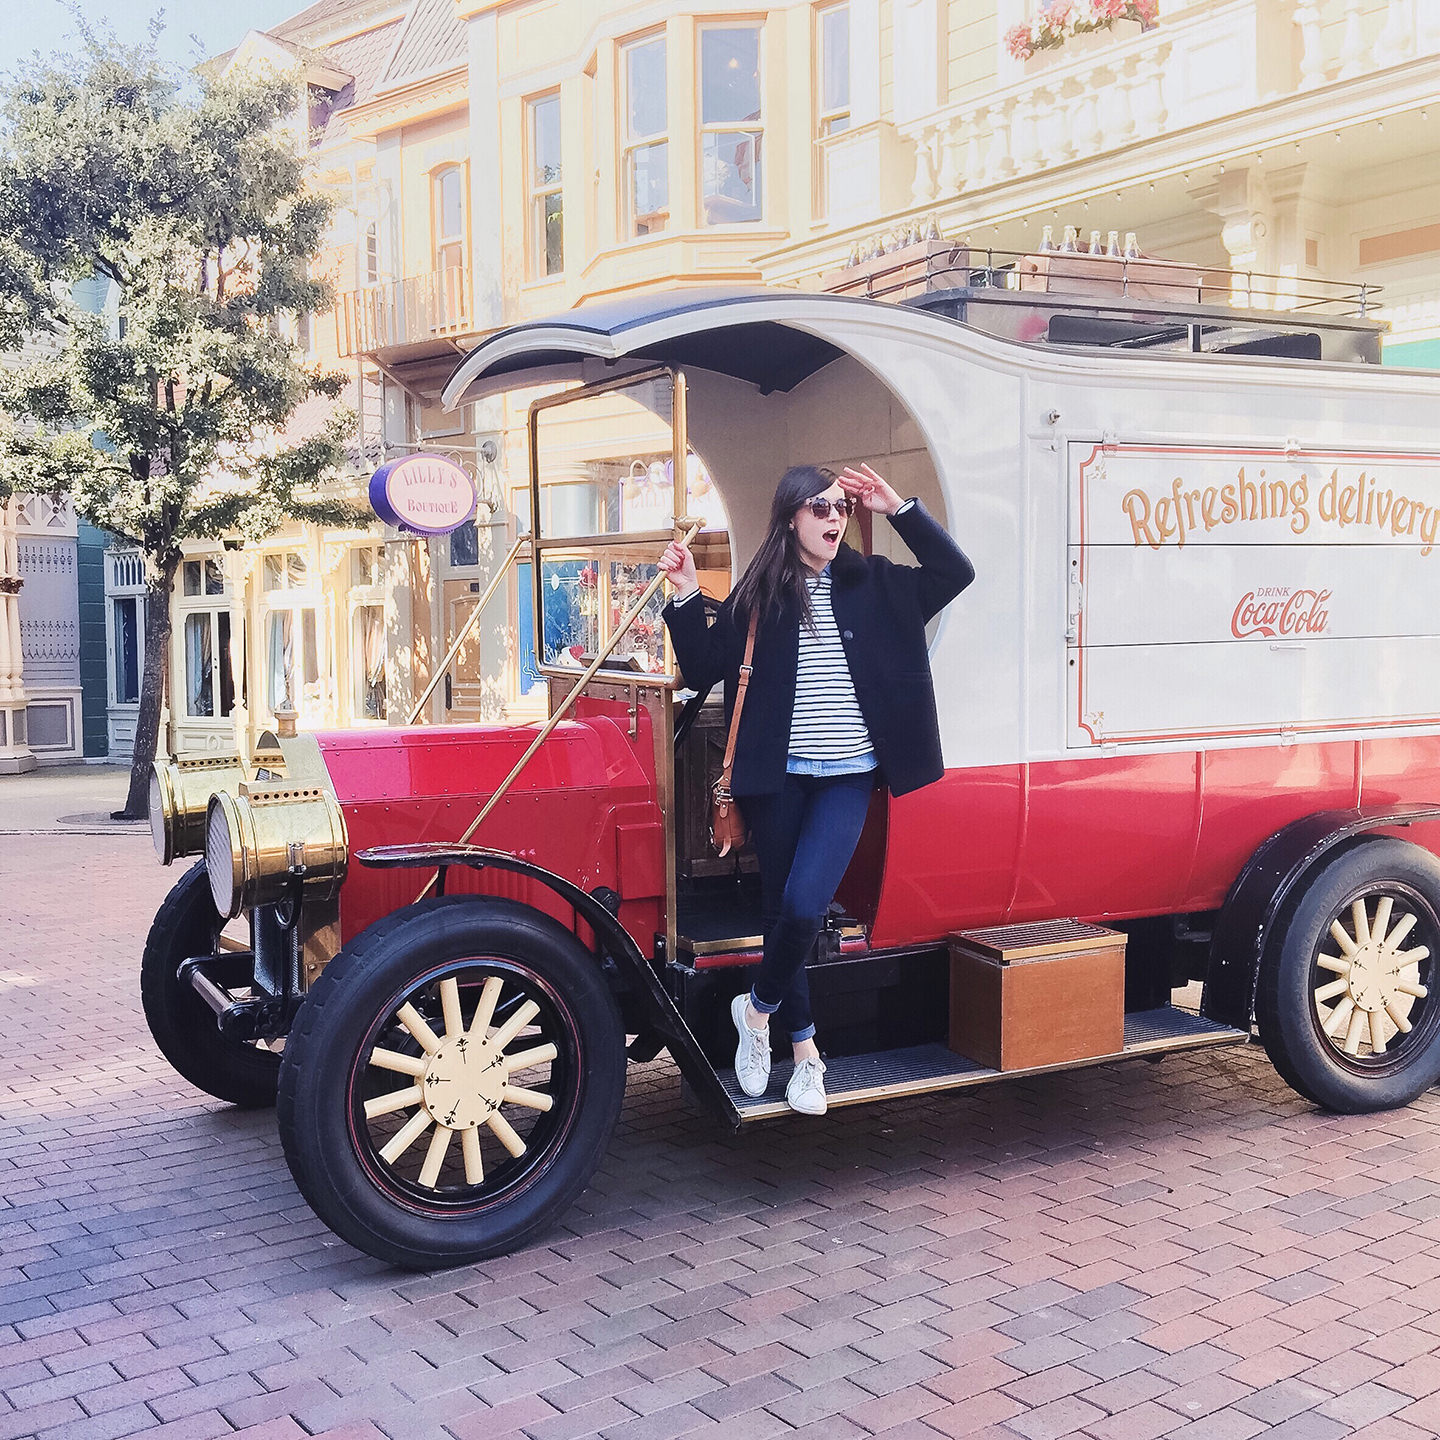 Blog-Mode-And-The-City-Lifestyle-Cinq-Petites-Choses-170-Disneyland-Paris